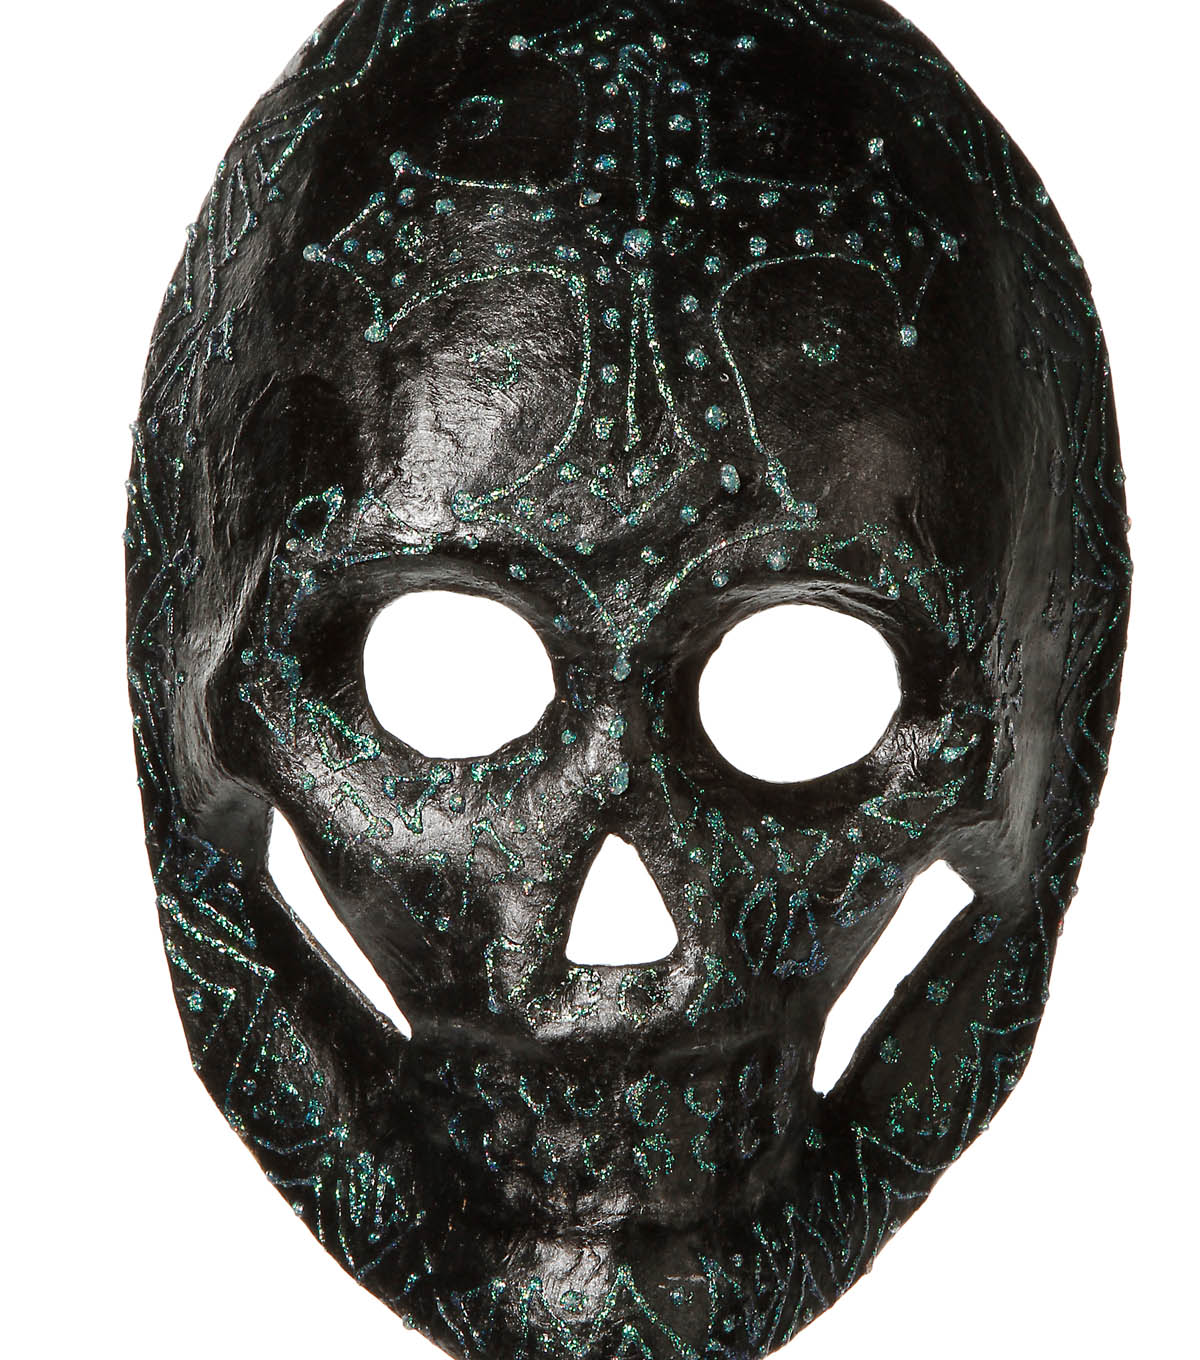 Tribal Inspired Skull Mask